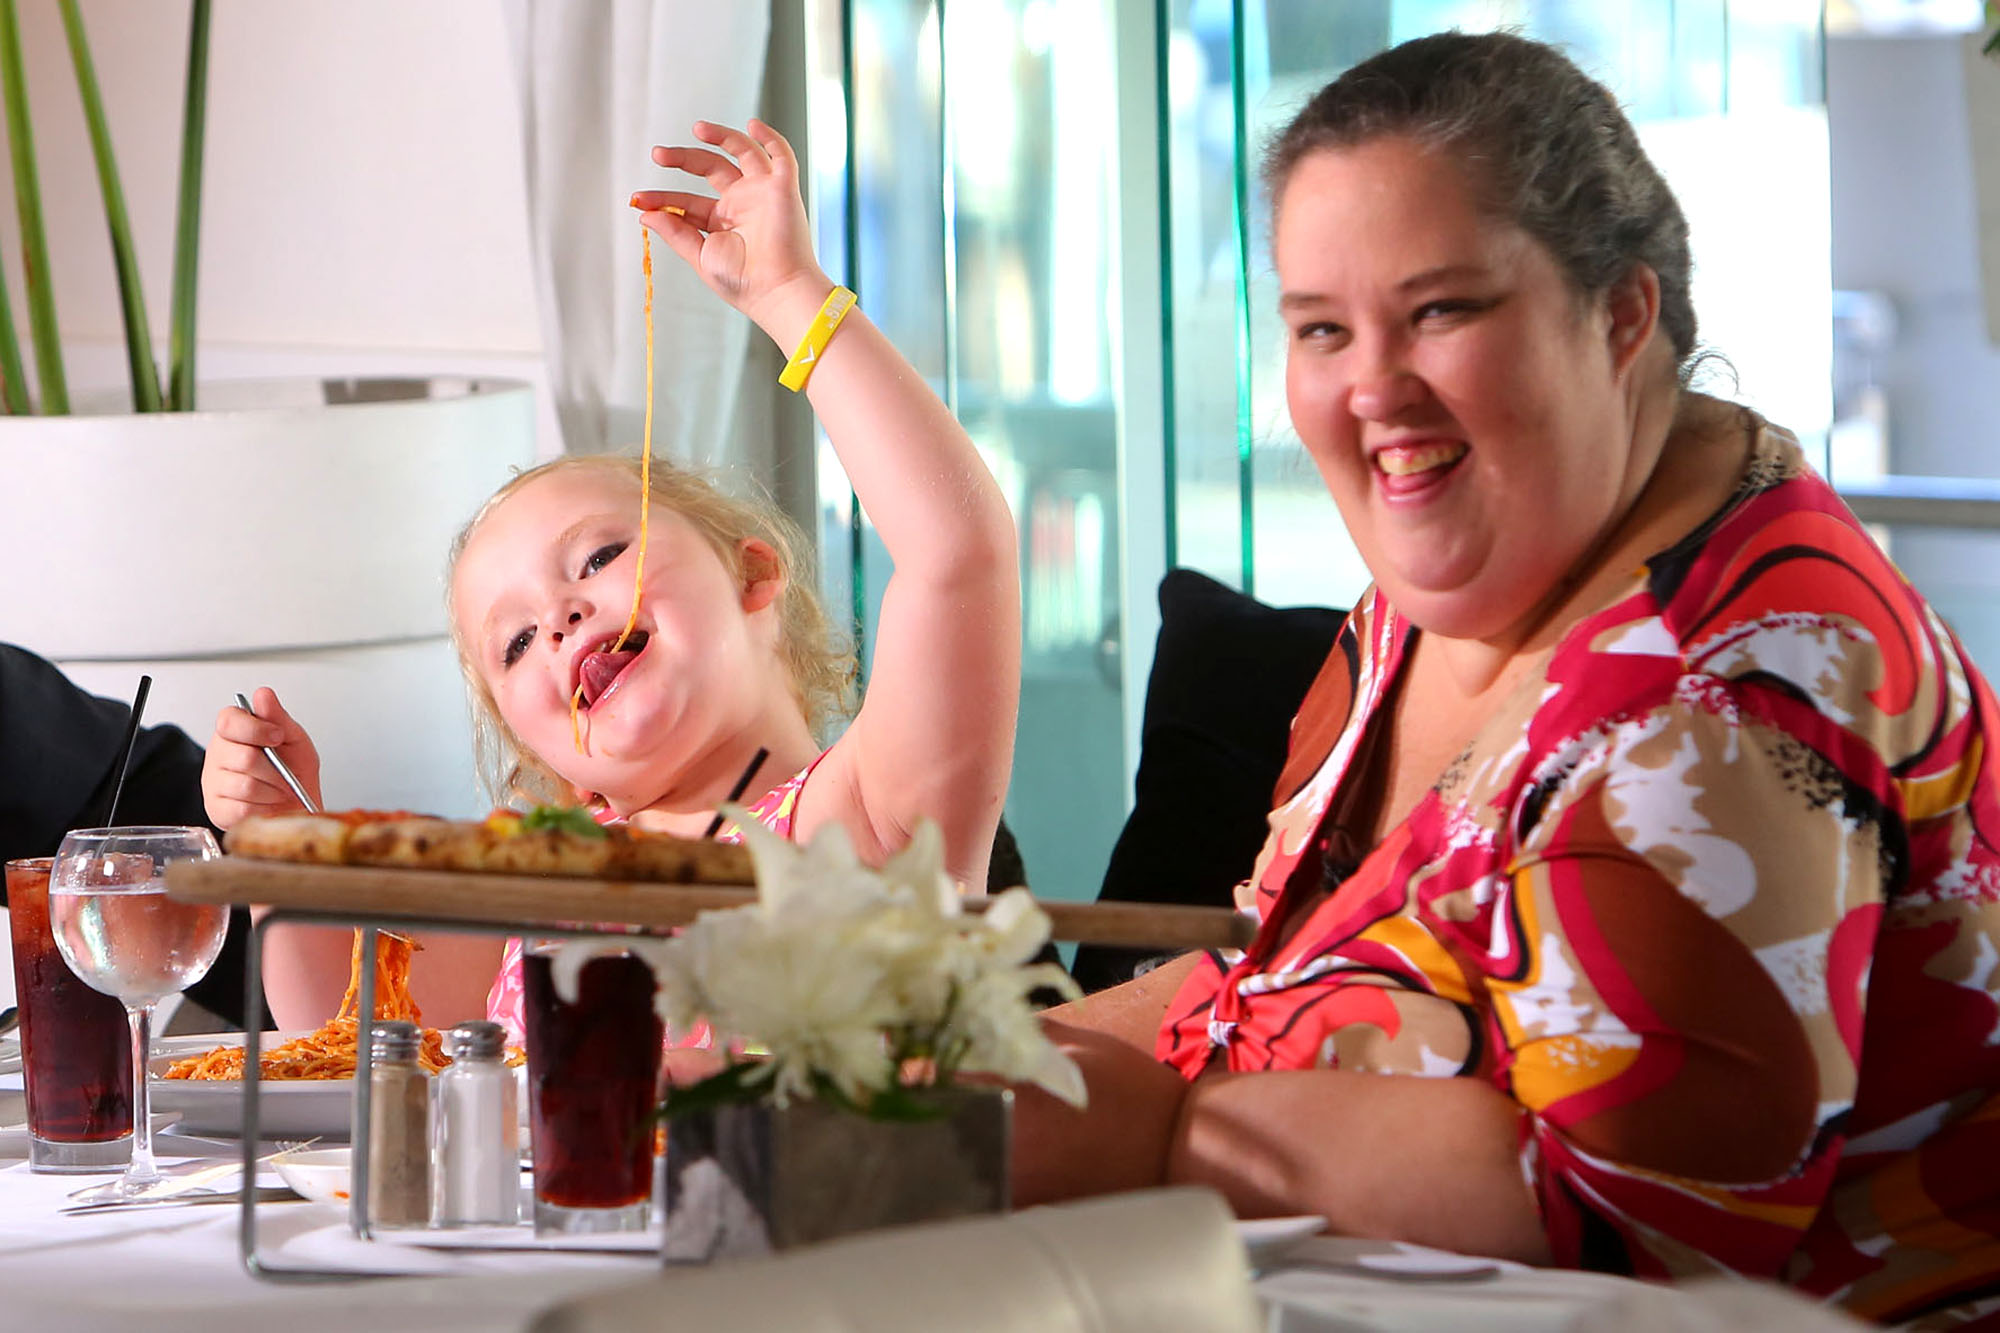 Alana 'Honey Boo Boo' Thompson plays with her pasta next to her mother June Shannon during an interview in 2012. Photo: INFphoto.com